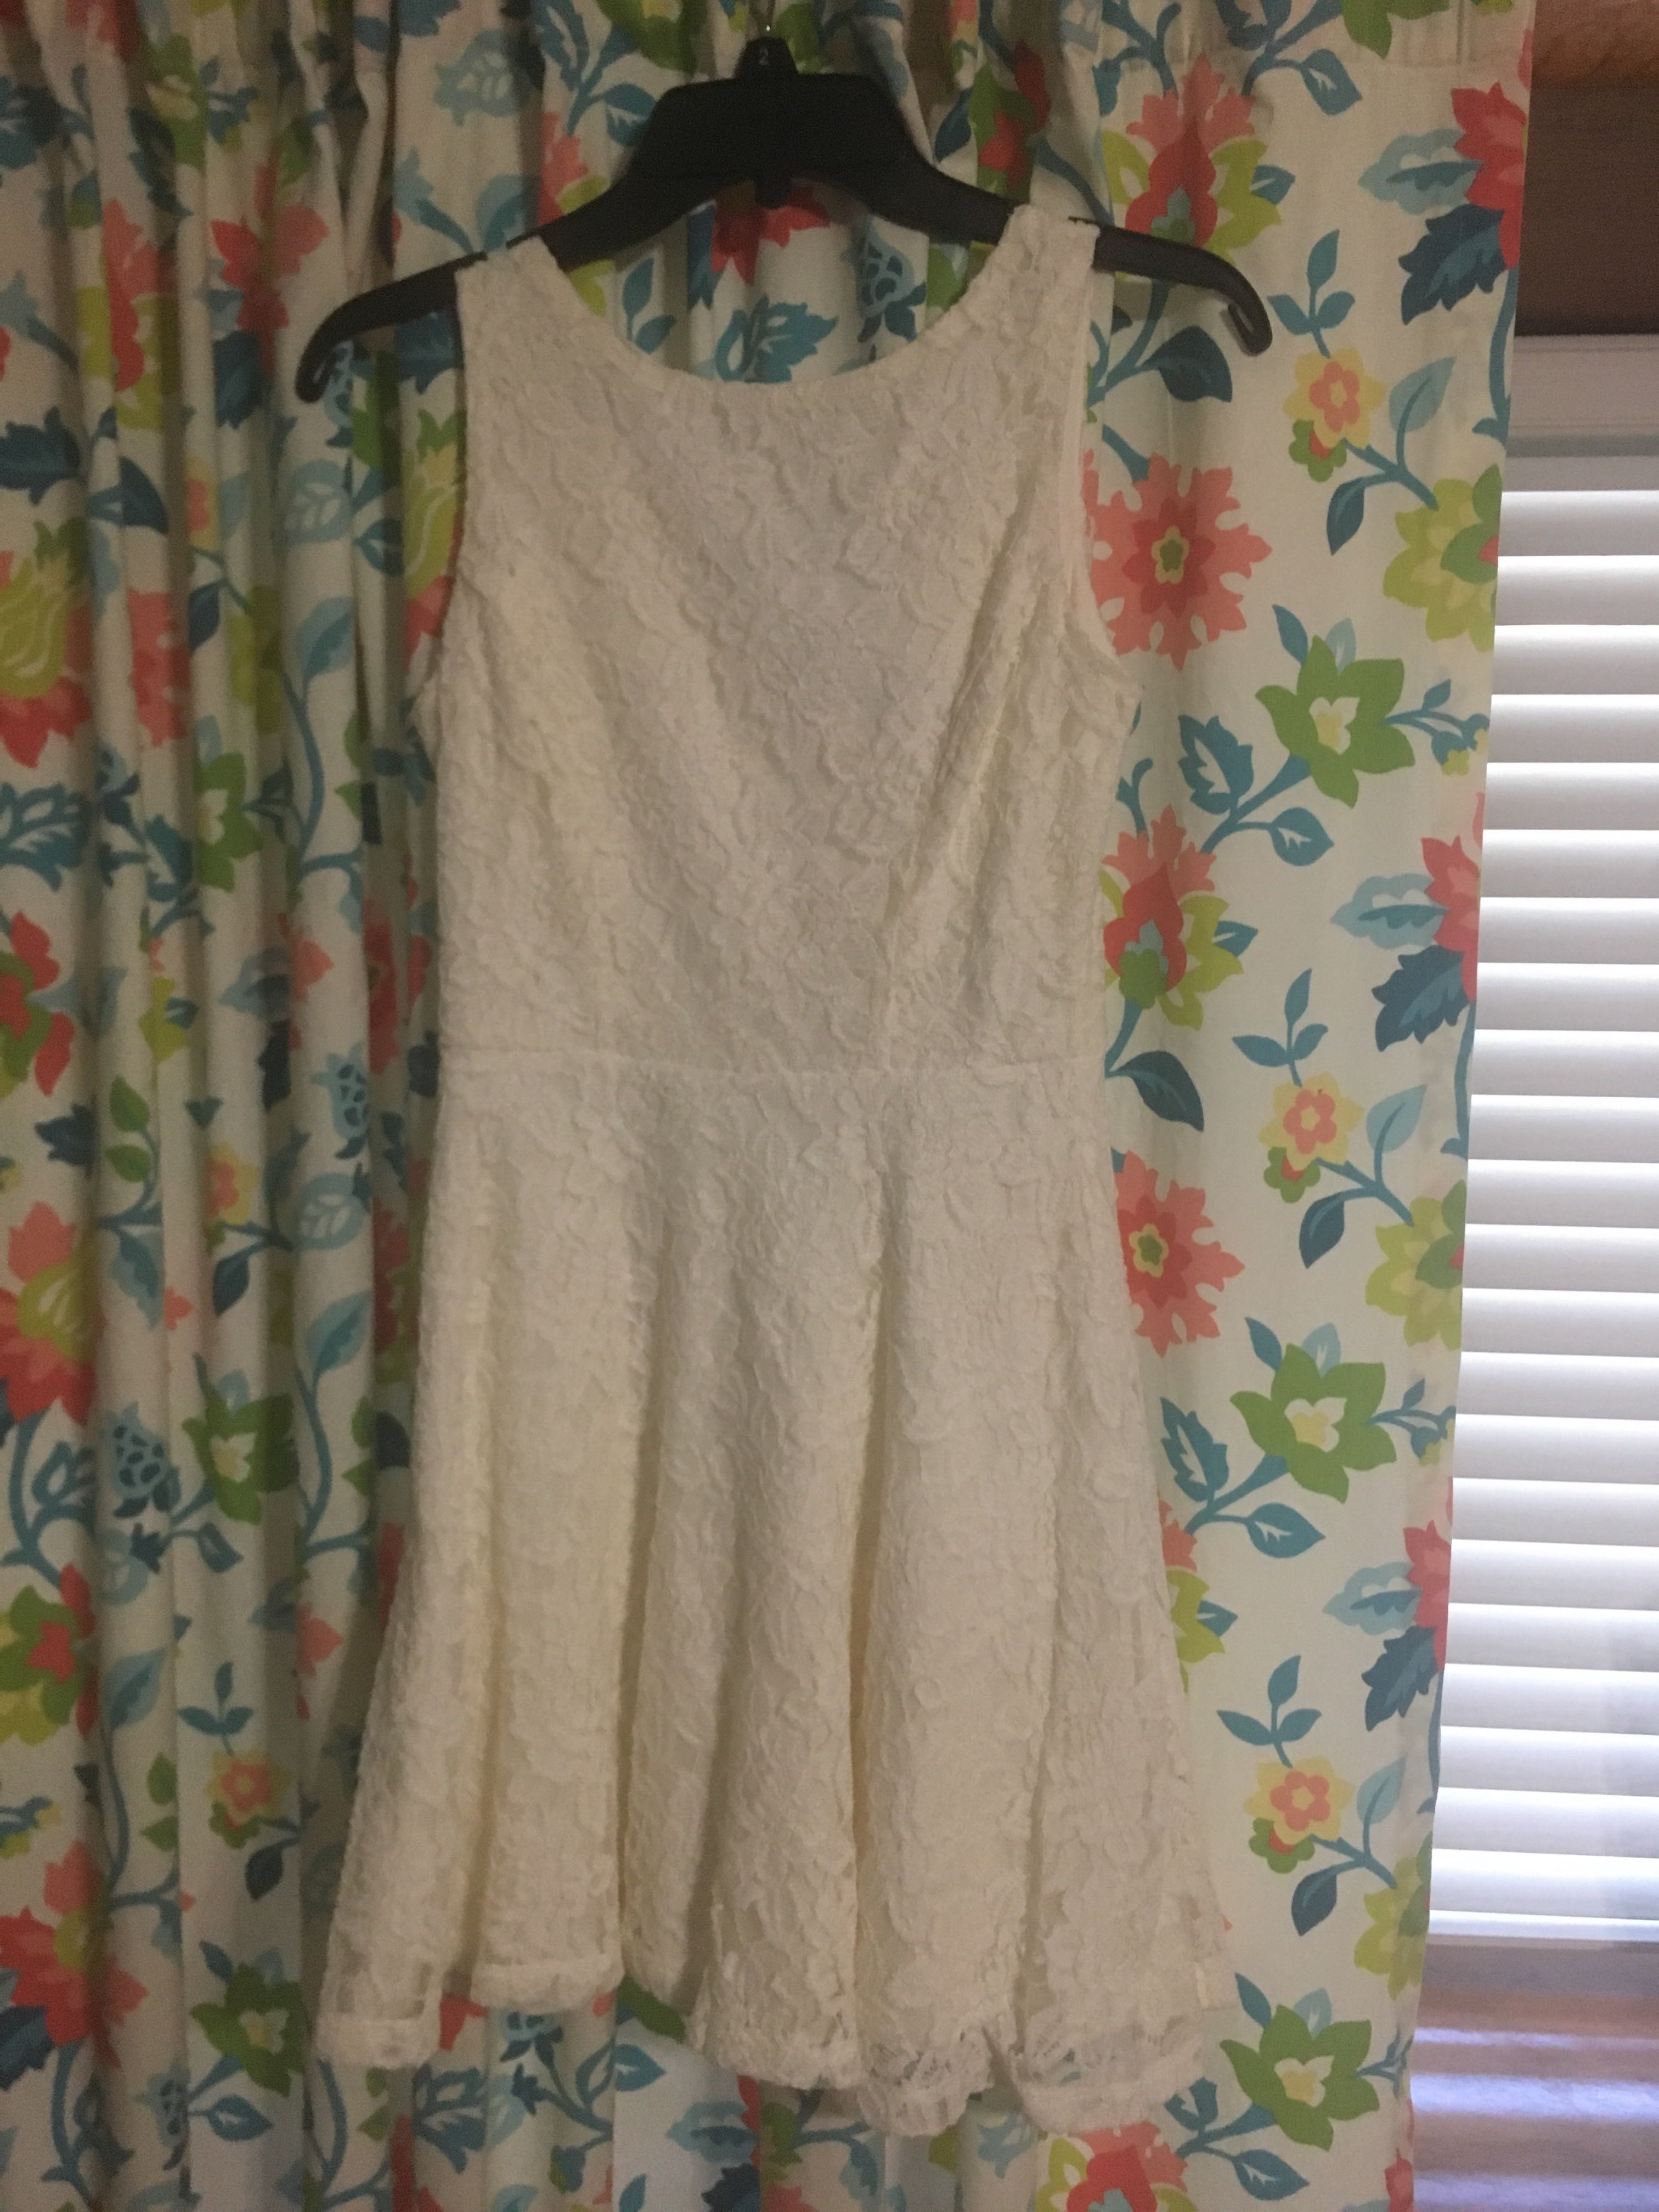 Cream colored formal dress